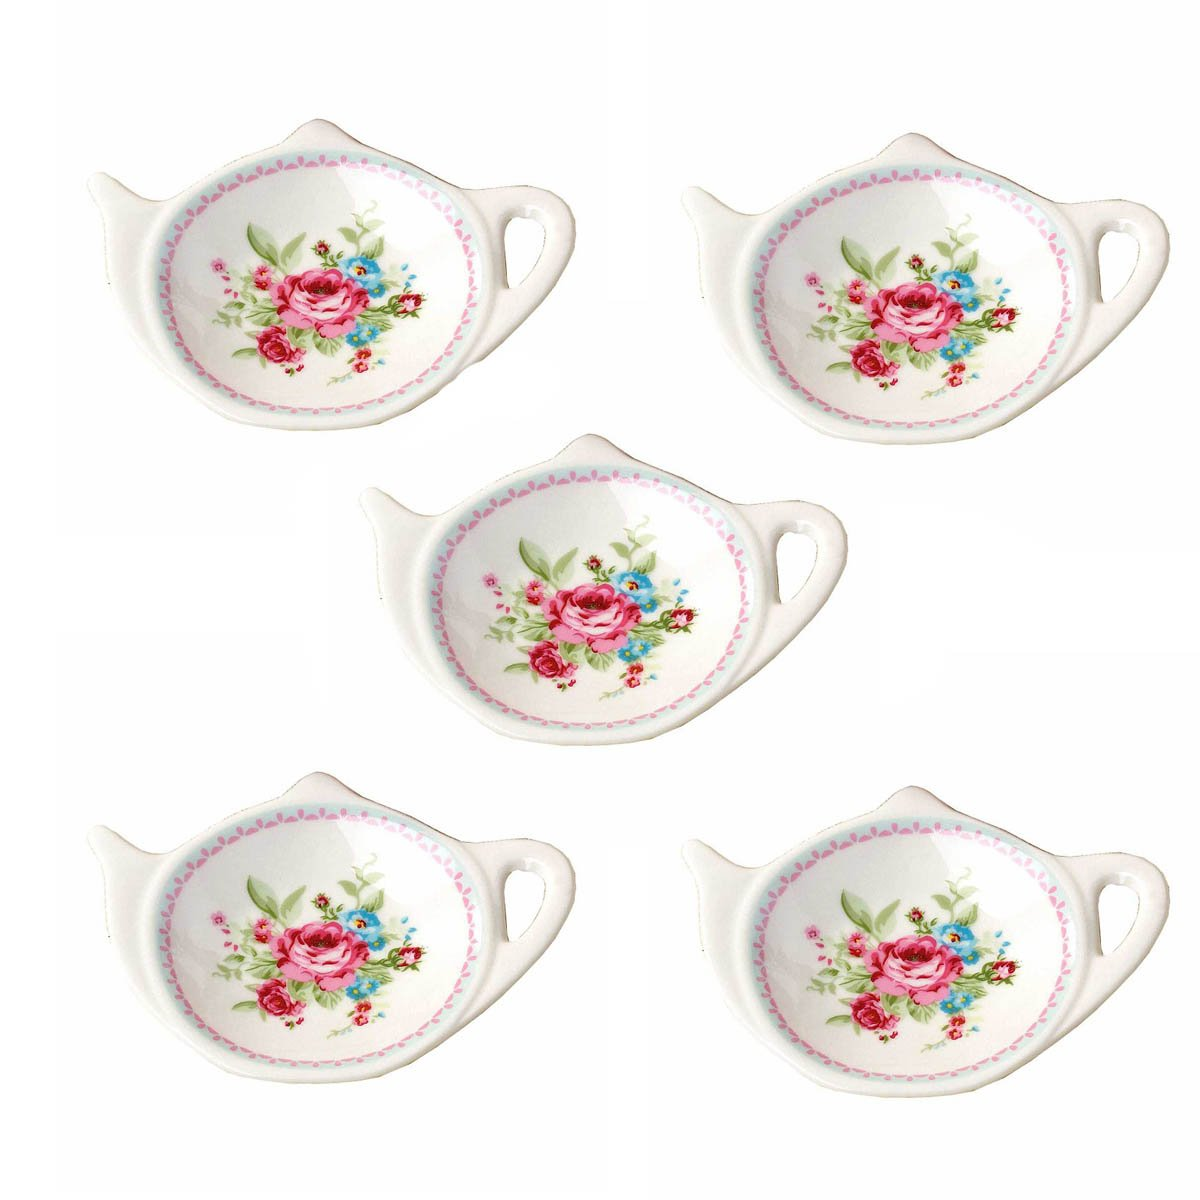 Set of White Porcelain Ceramic with Flower Trim Teapot-Shaped Tea Bag Holder Tea Bag Coasters, Spoon Rests; Classic Tea Time Saucer Seasoning Dish Set (TYGZ)